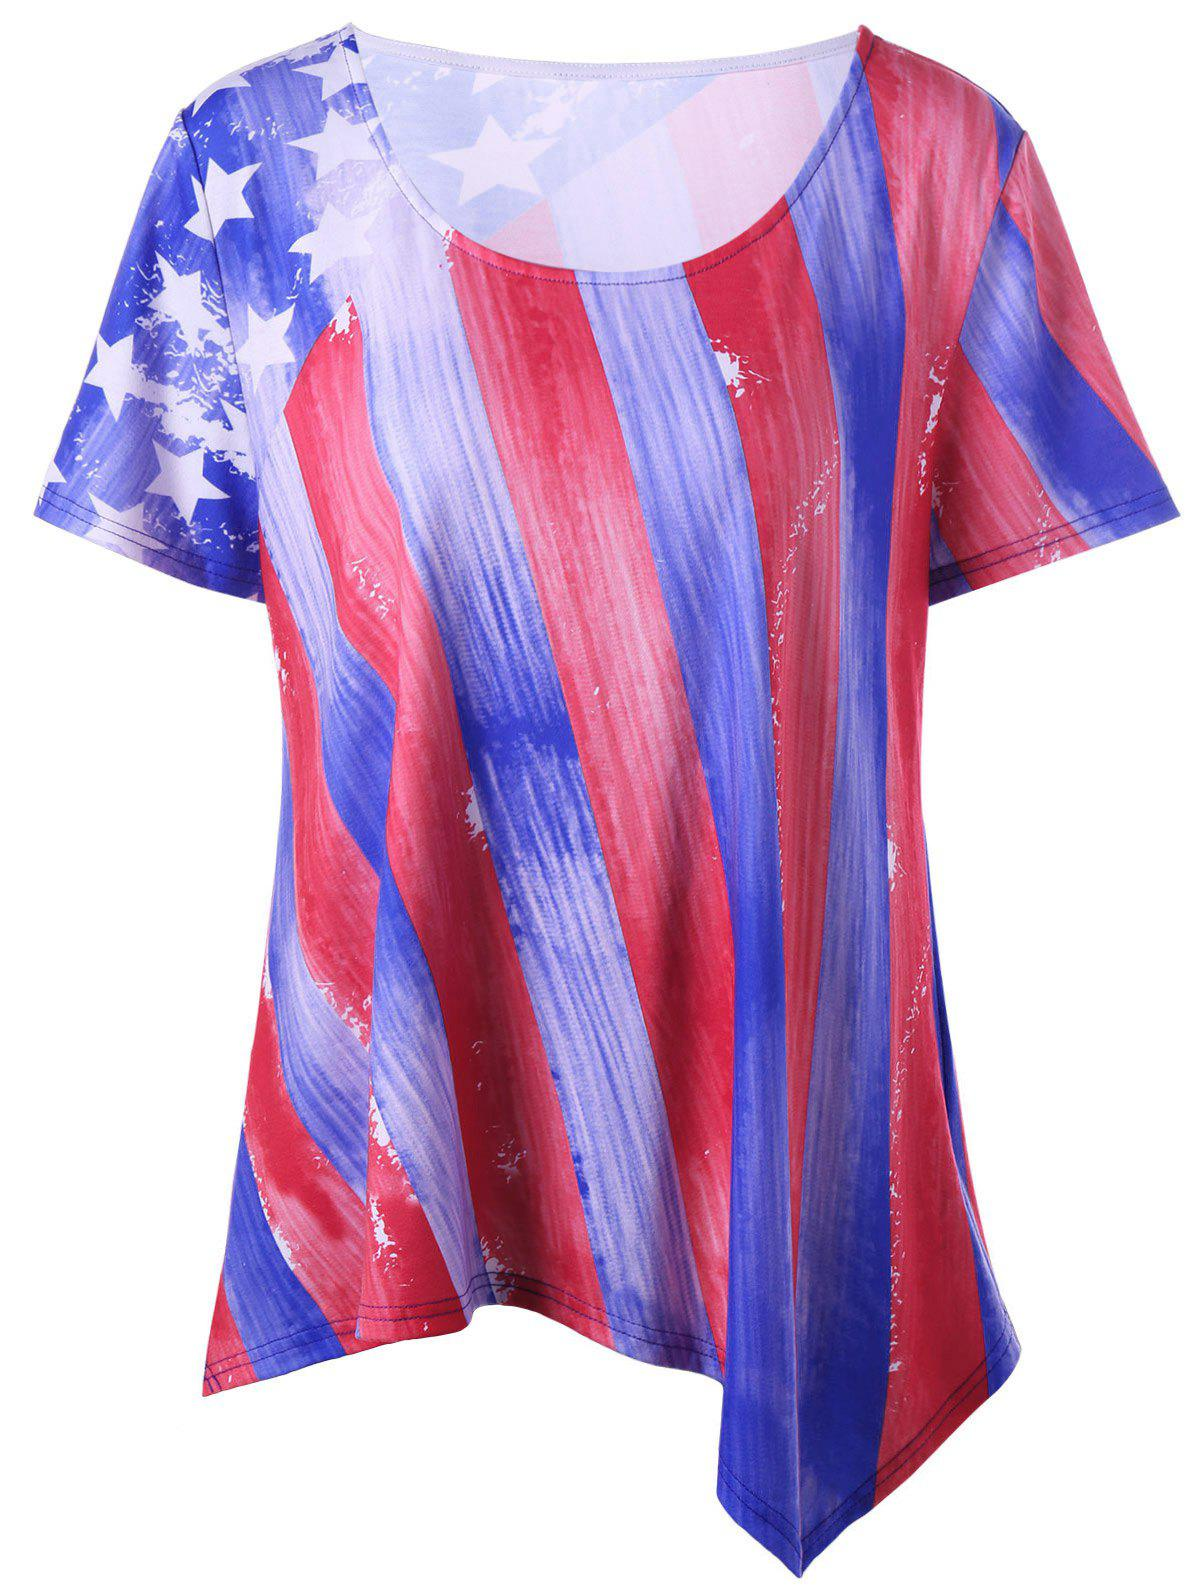 Plus Size American Flag Asymmetrical T-shirt ballu aw 320 black